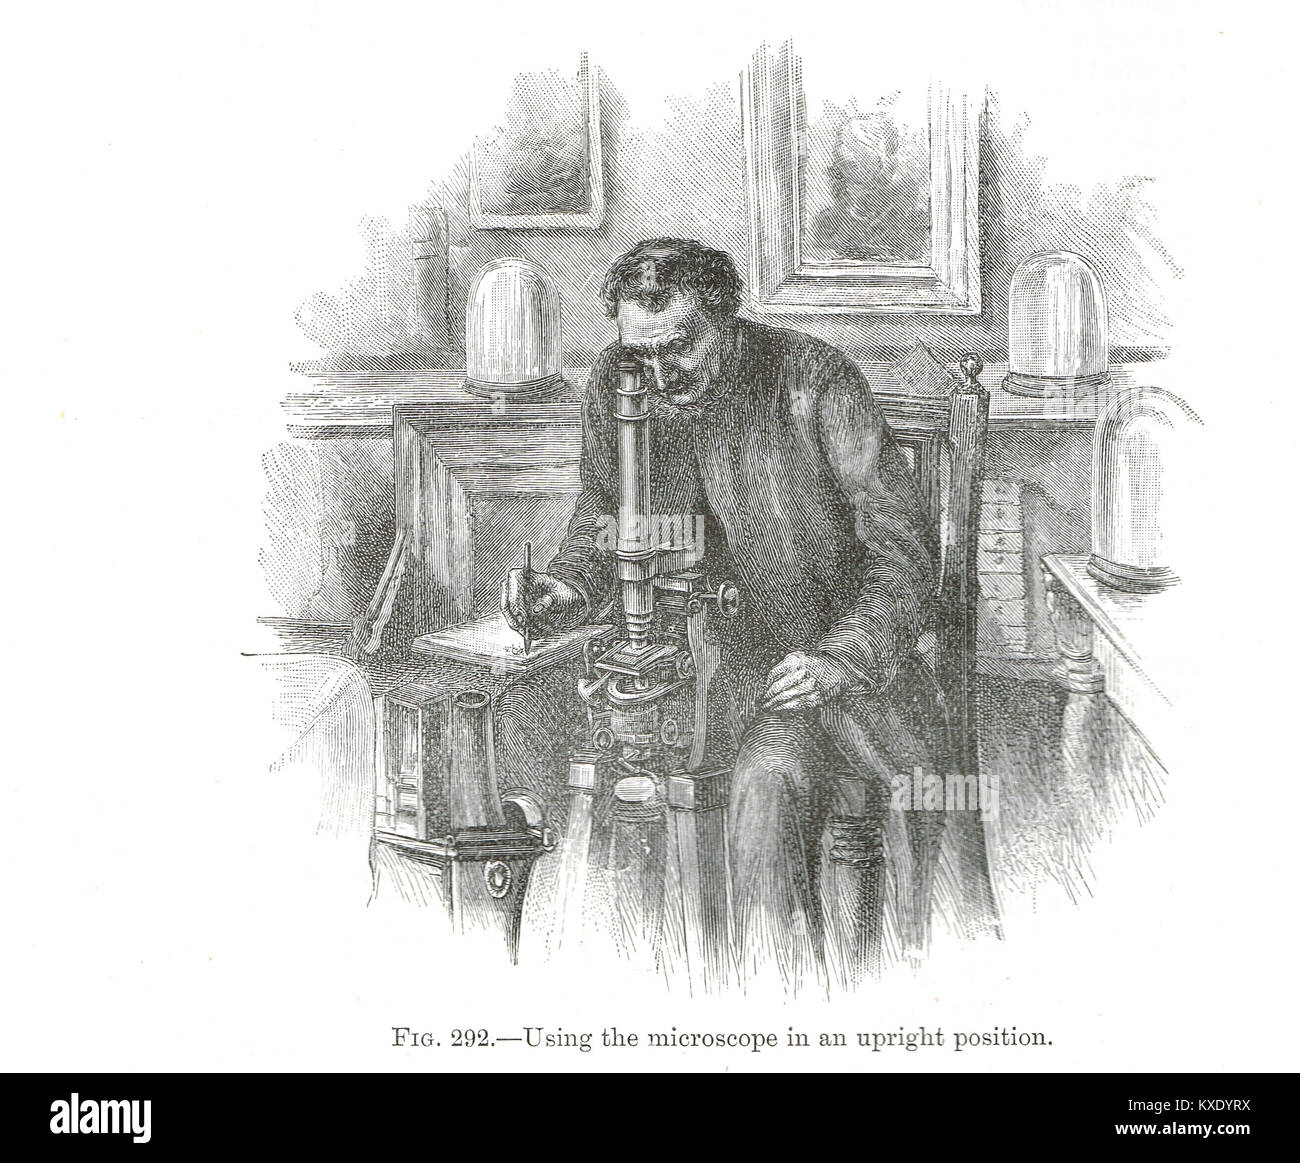 Victorian man using microscope in an upright position - Stock Image